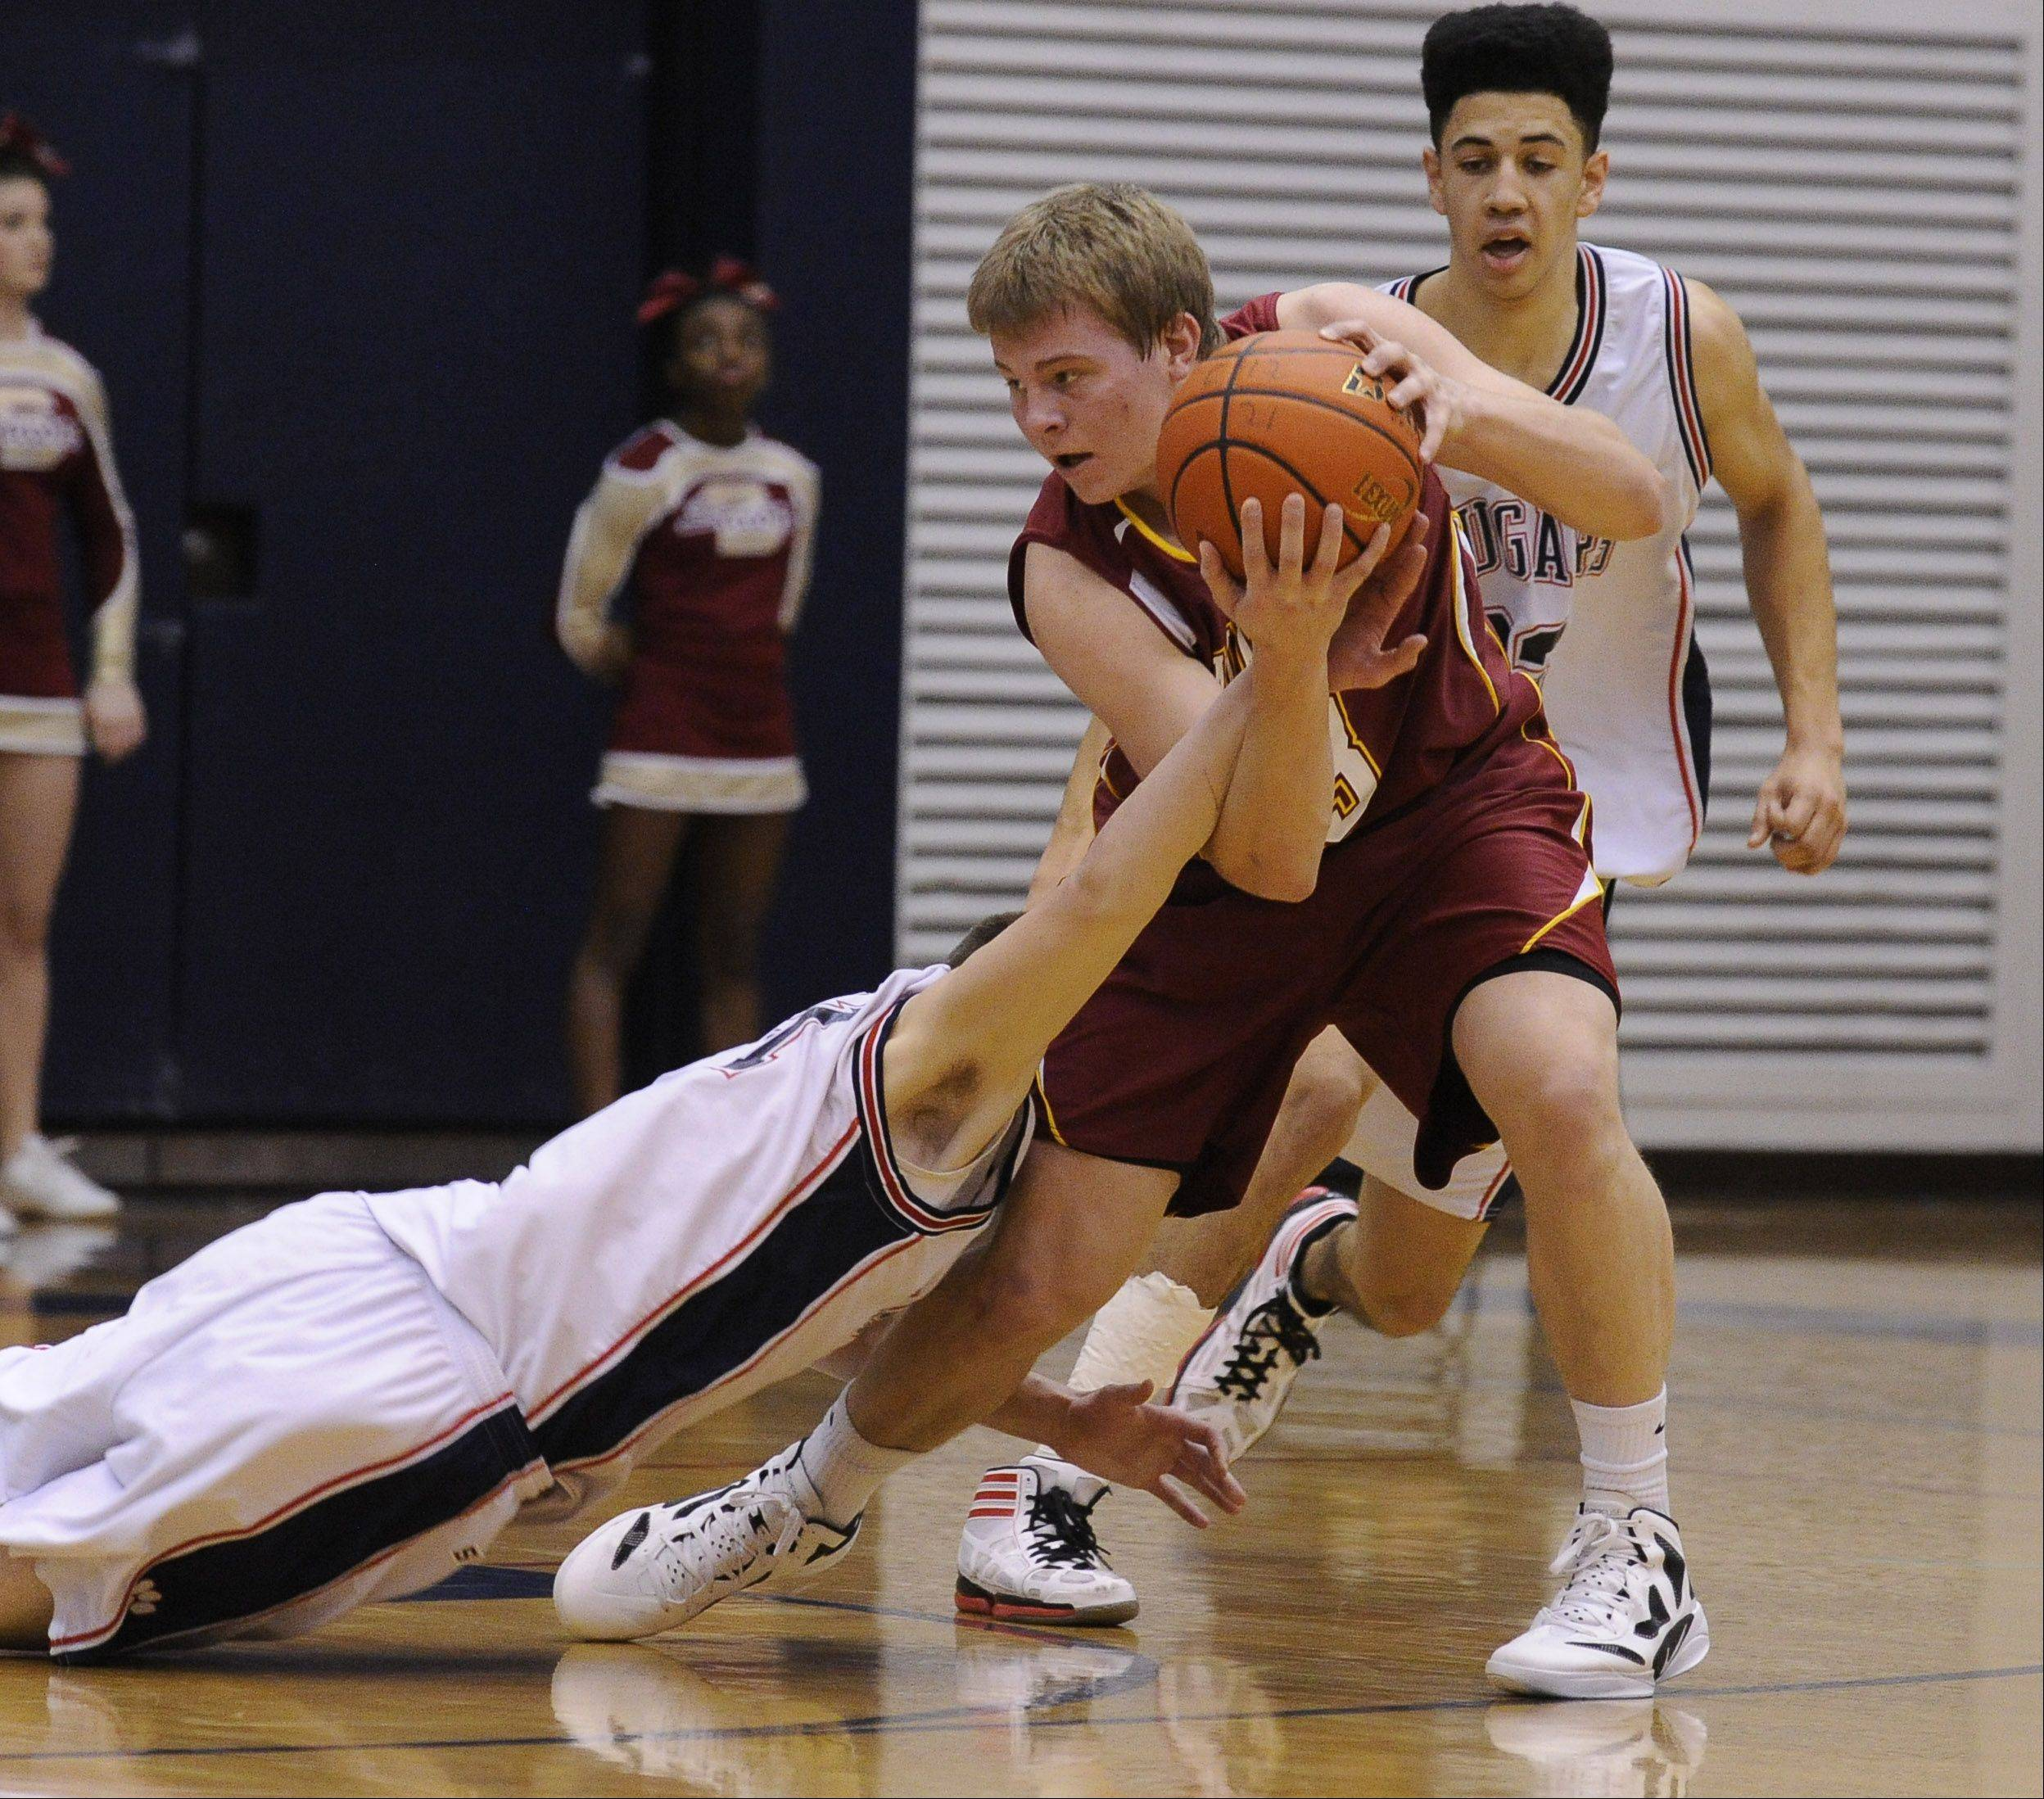 Conant's Ryan Blaha tries to strip the ball from Schaumburg's Kyle Bolger at Conant on Saturday.